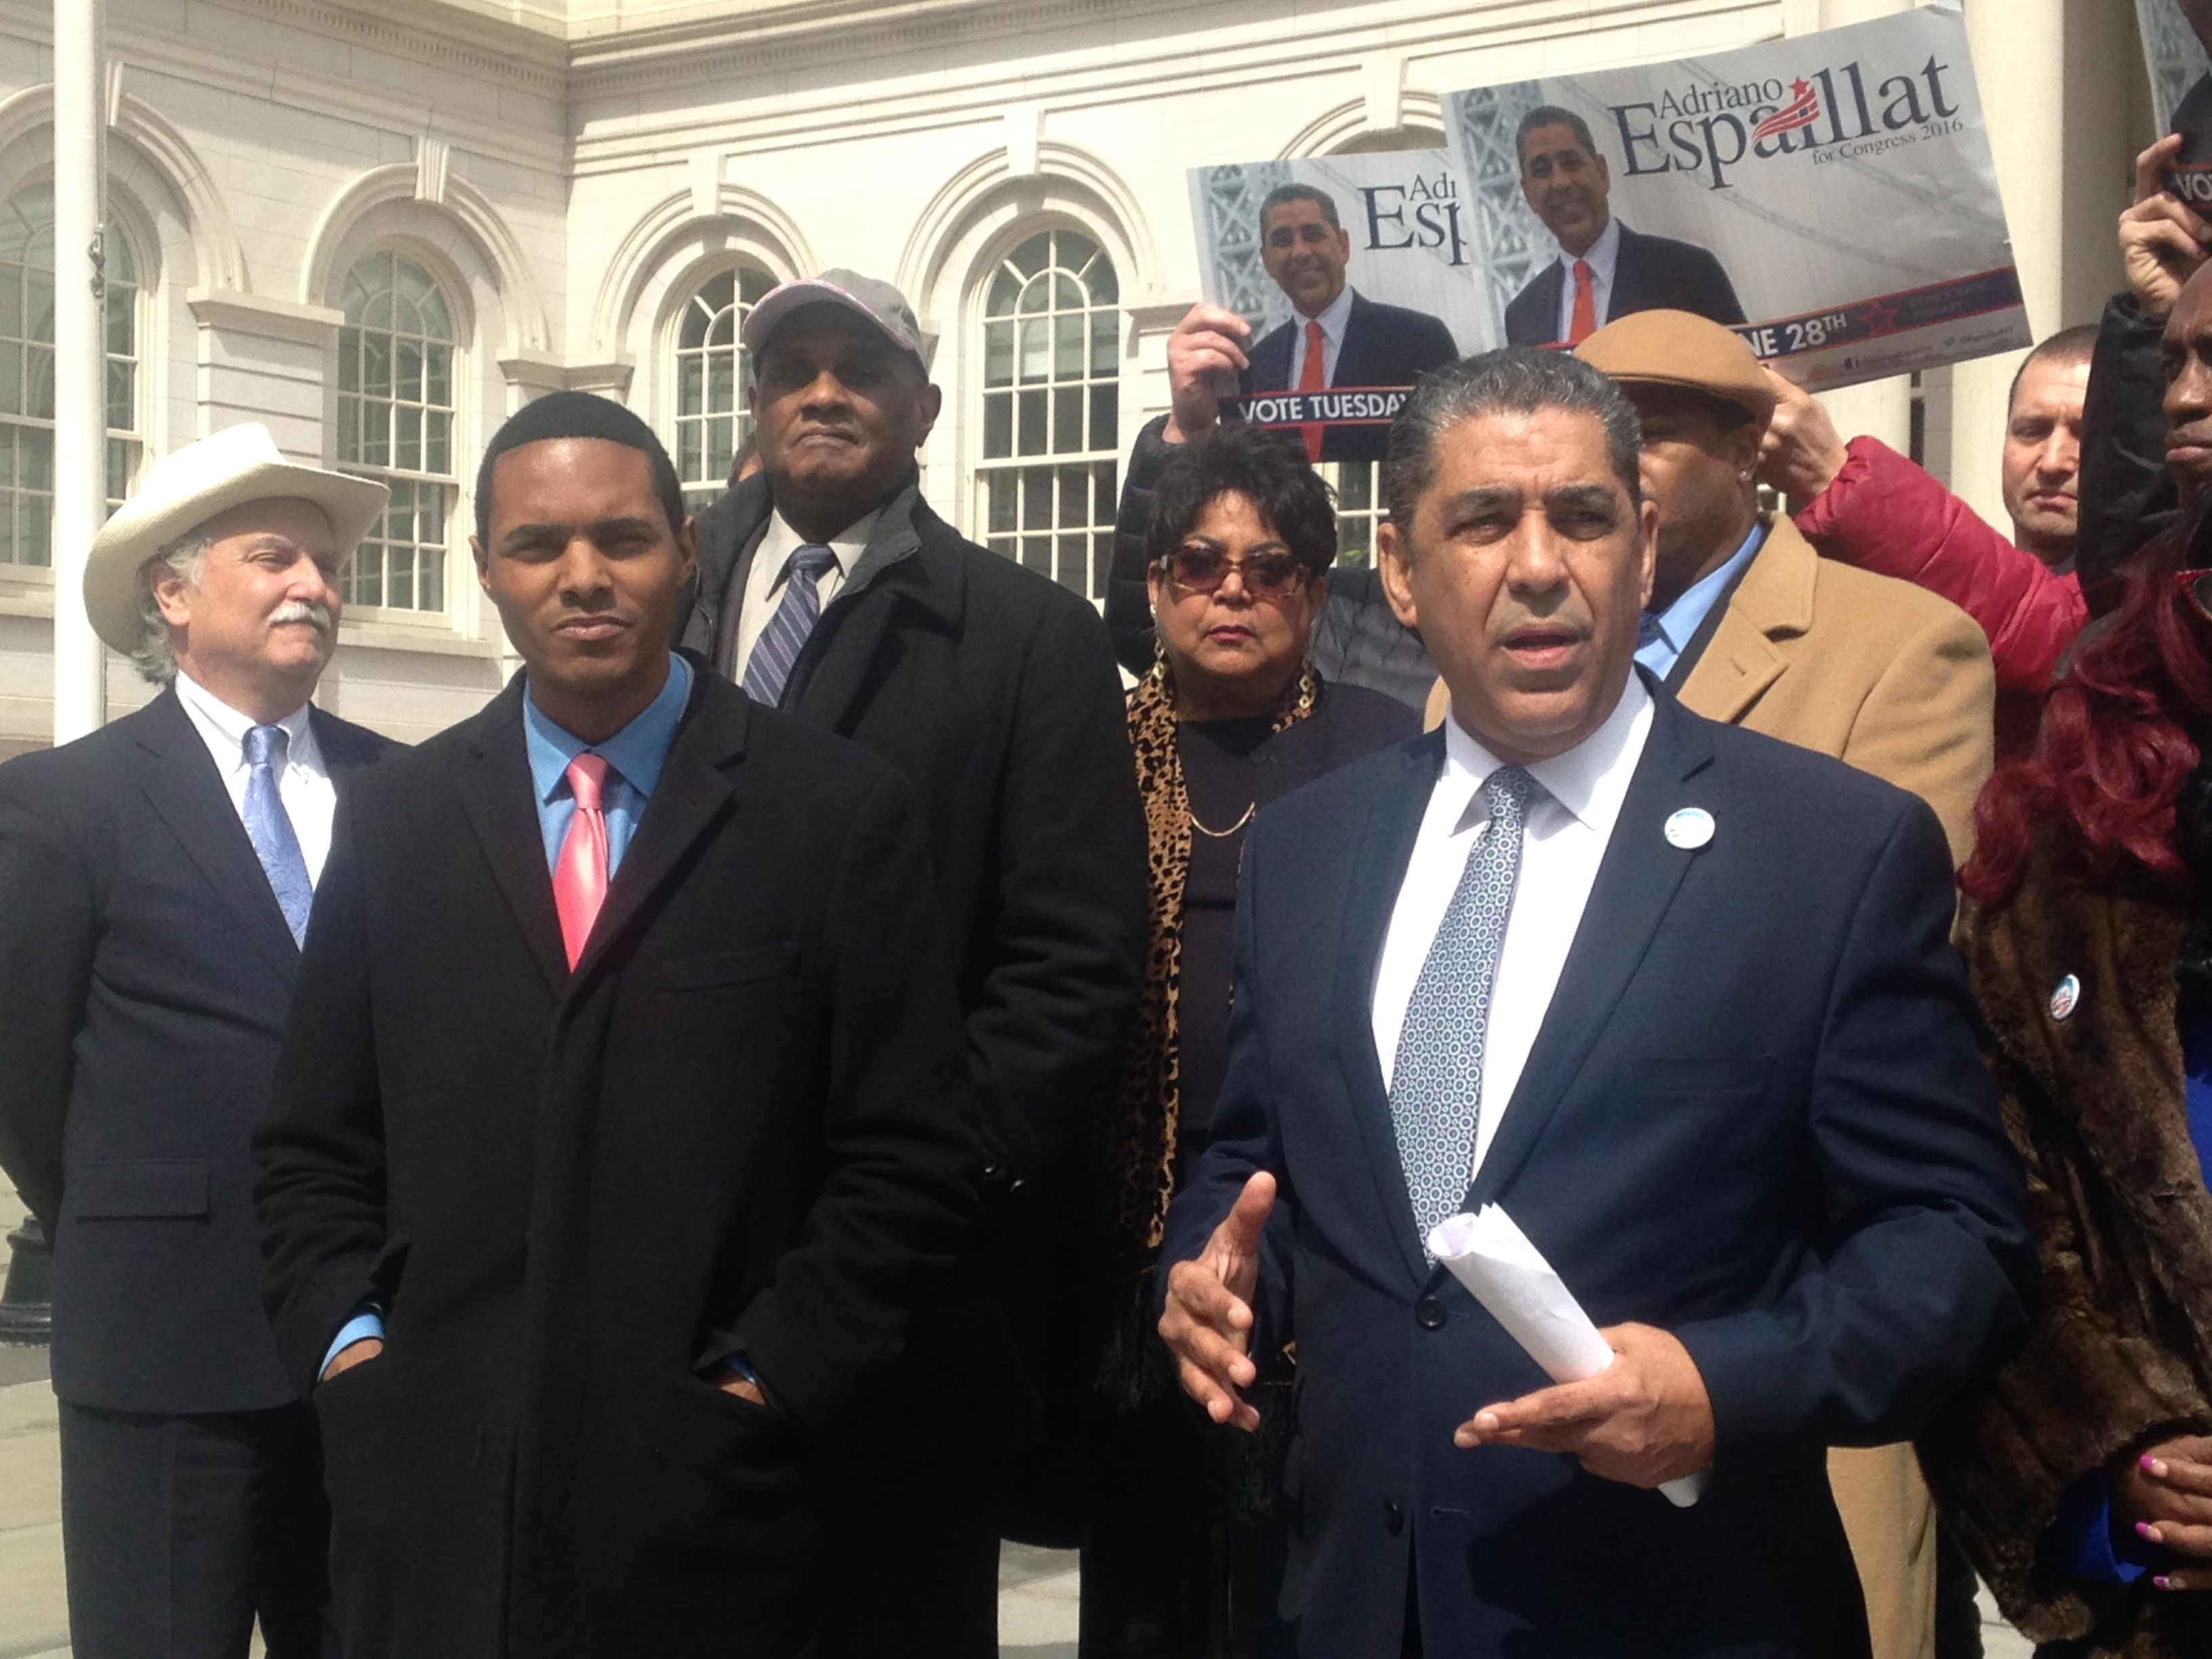 State Senator Adriano Espaillat, right, with Councilman Ritchie Torres.